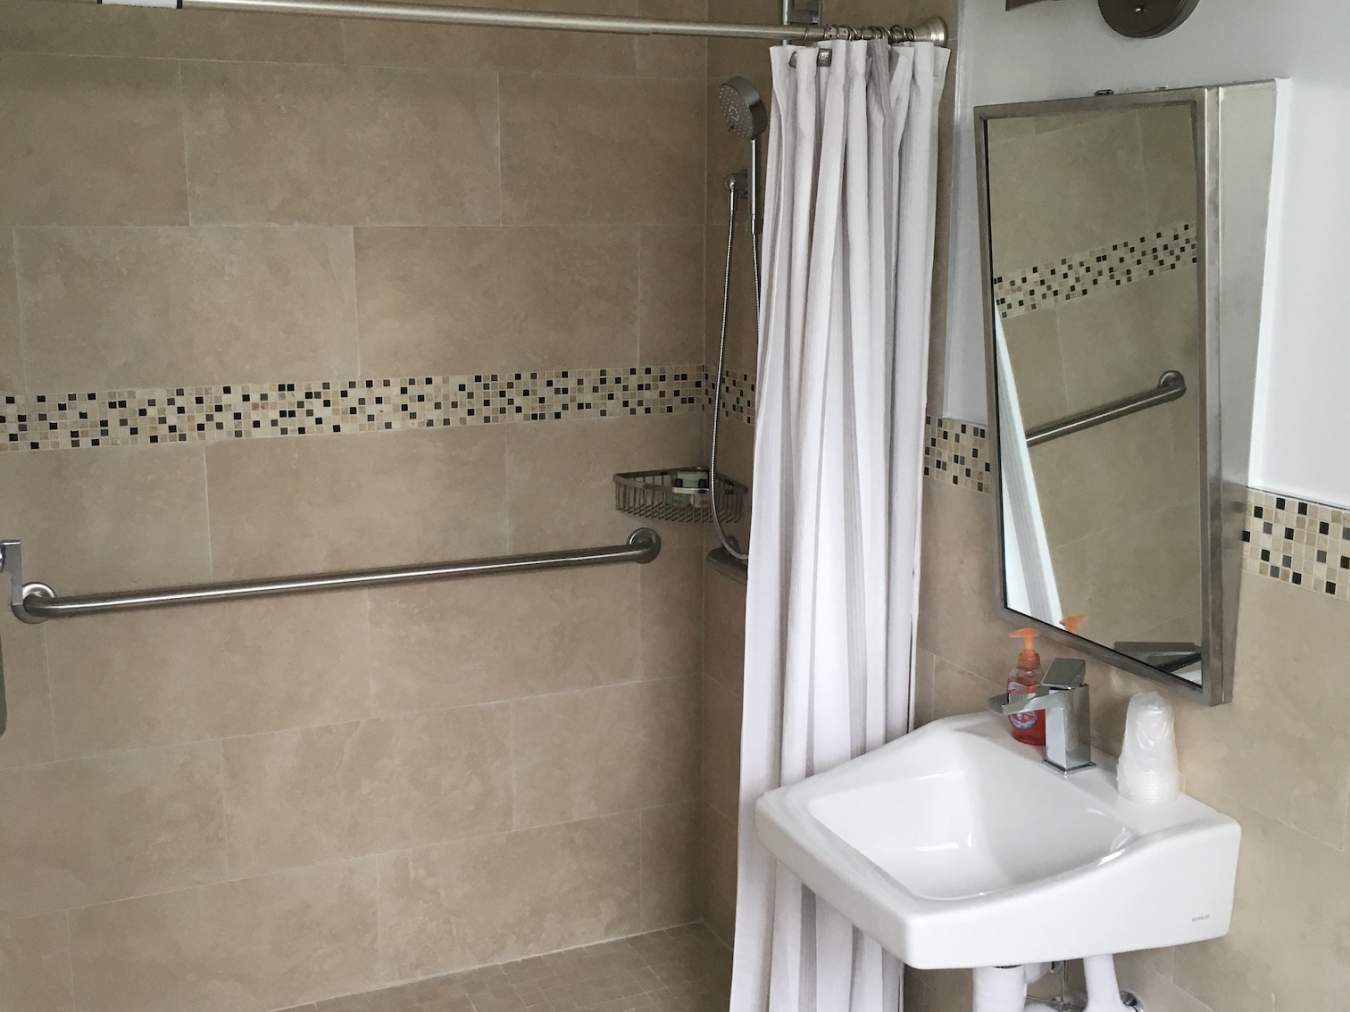 Shower with sink and mirror on the right